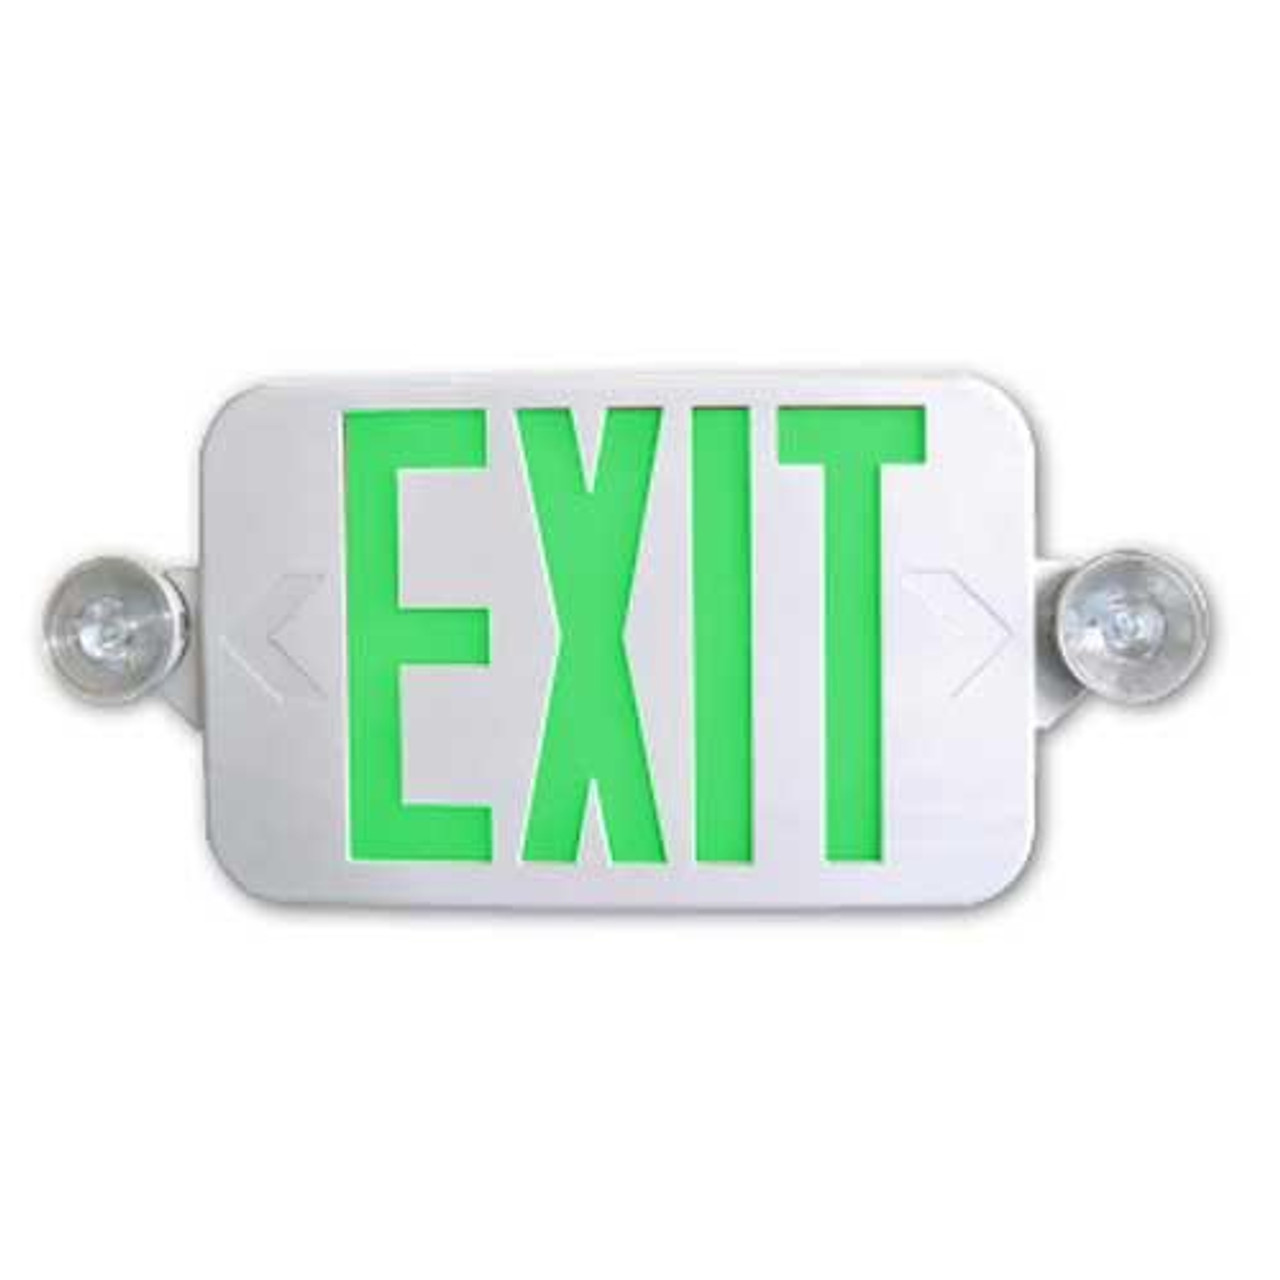 Mini Combo Exit Emergency Adjustable Heads Green Letters